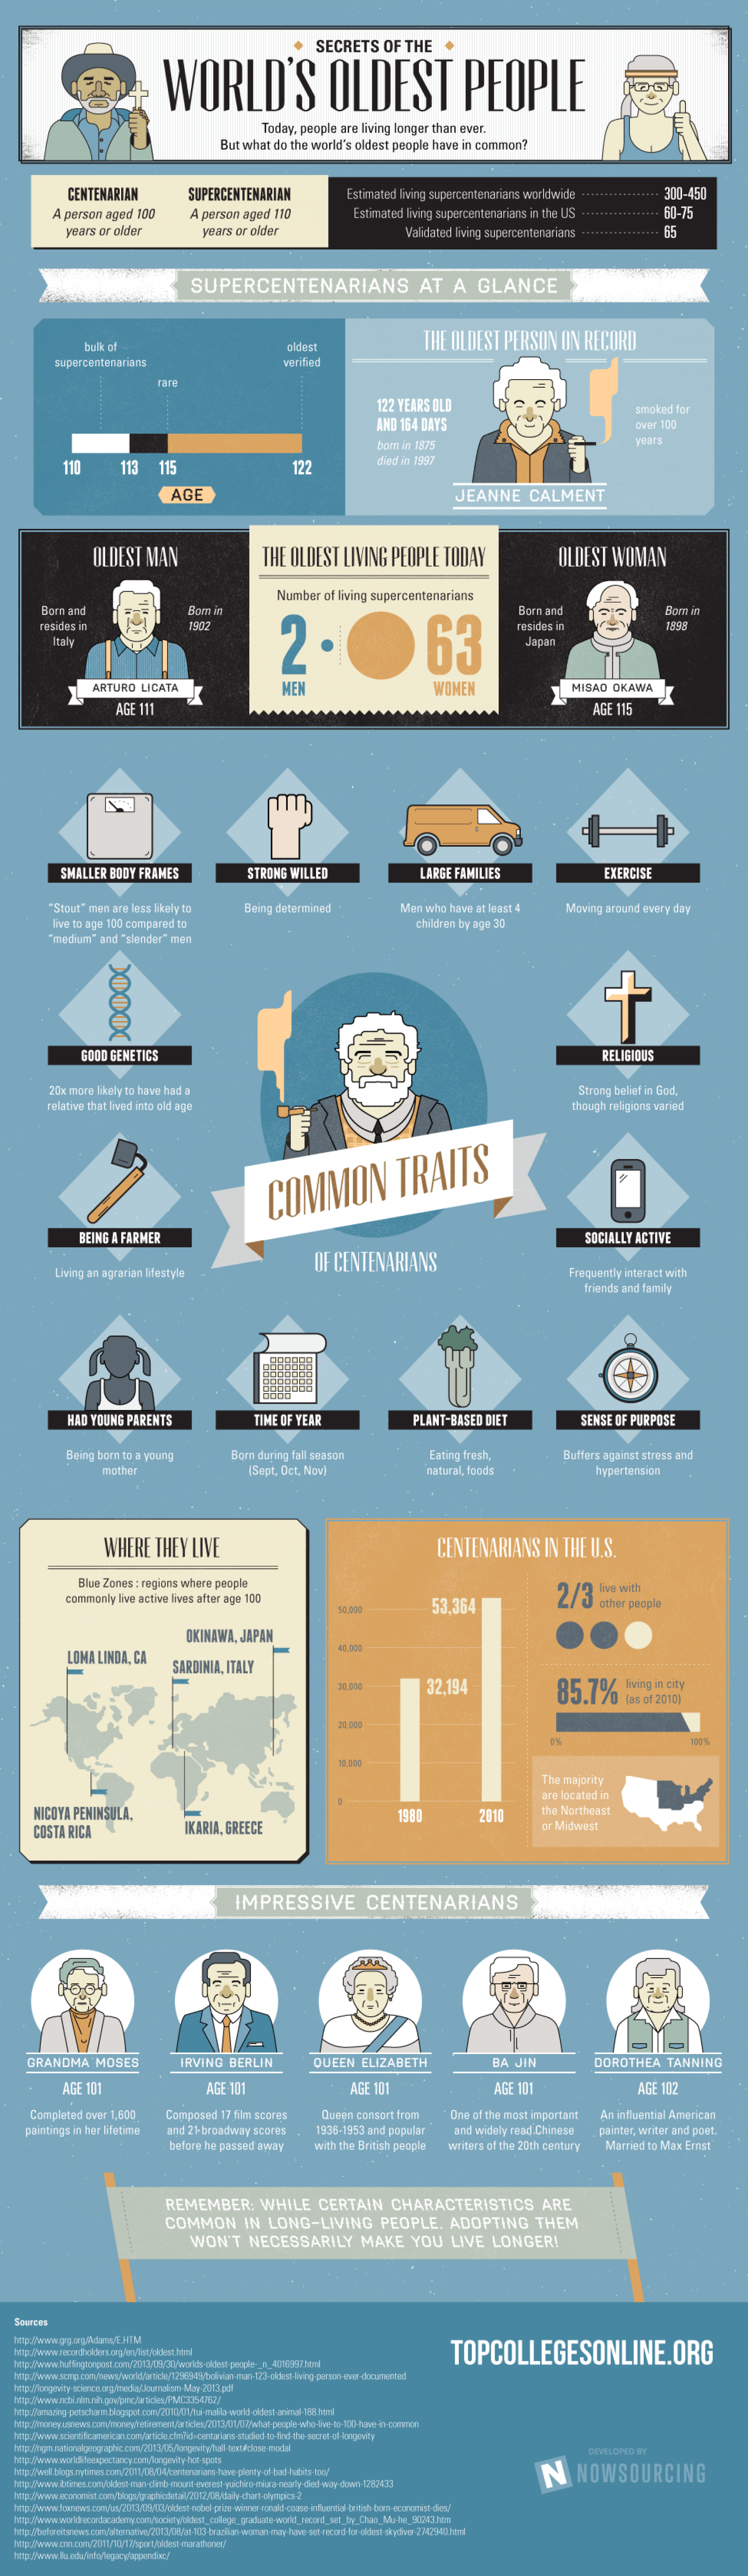 Secrets of the World's Oldest People Infographic